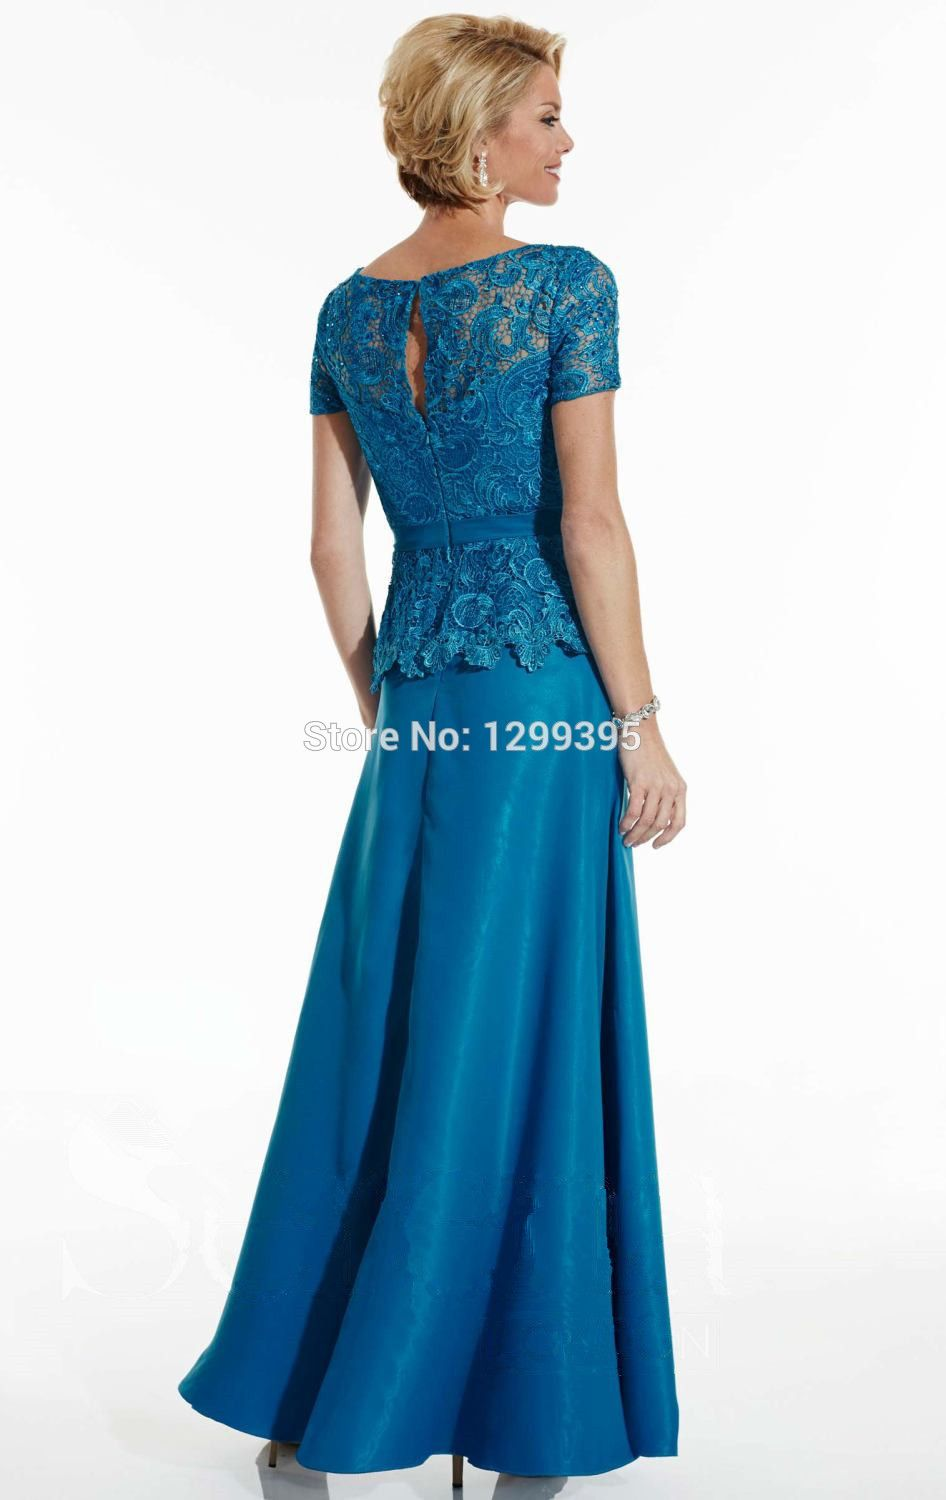 Blue Lace and Satin Mother of the Bride Dress for Wedding Wedding ...